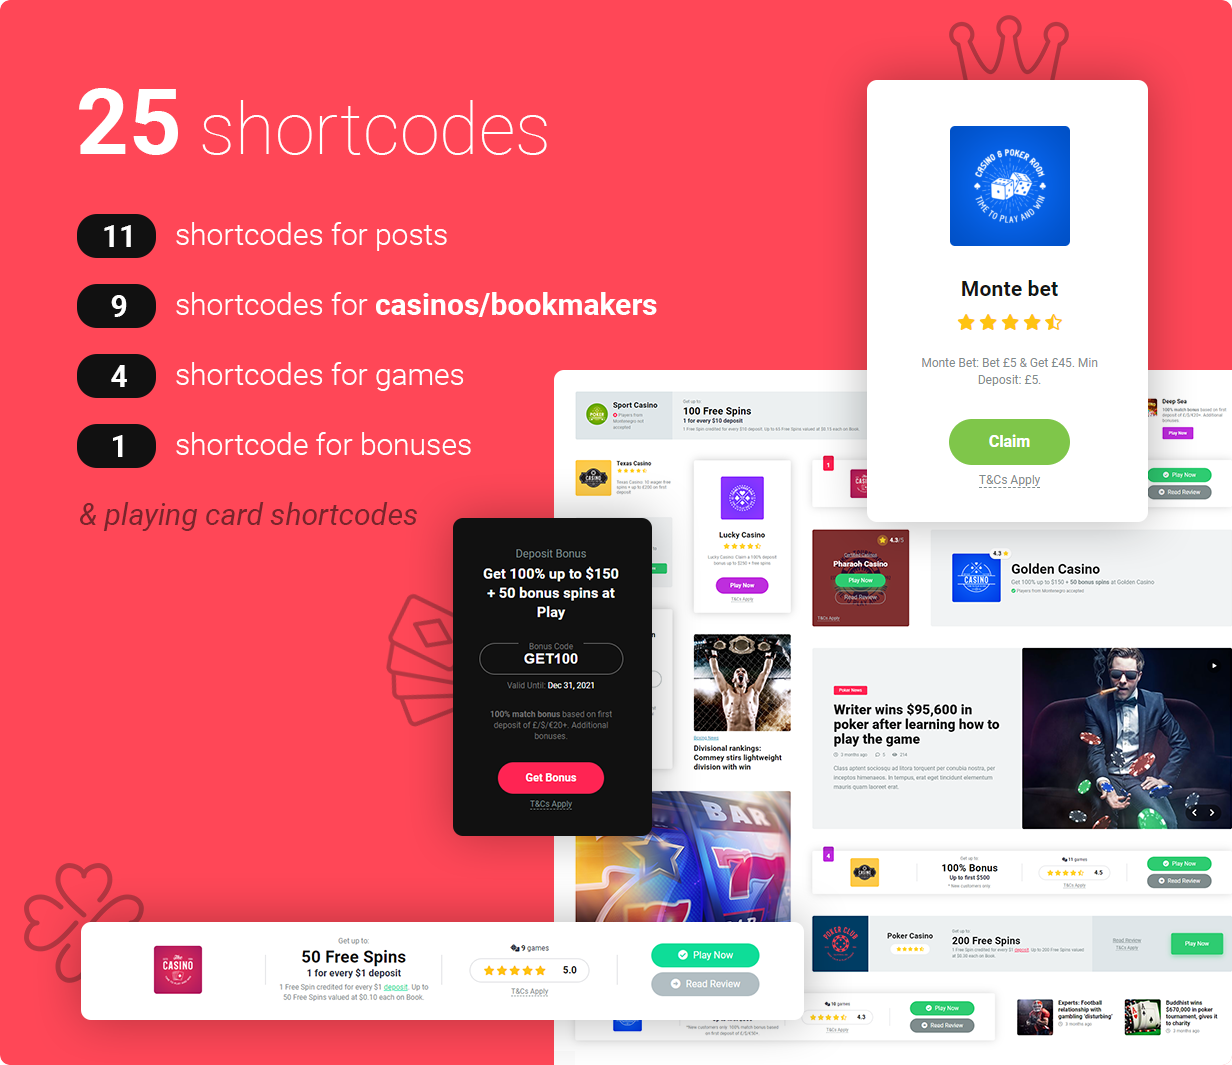 shortcodes for lp 2 2 - Mercury - Affiliate WordPress Theme. Casino, Gambling & Other Niches. Reviews & News